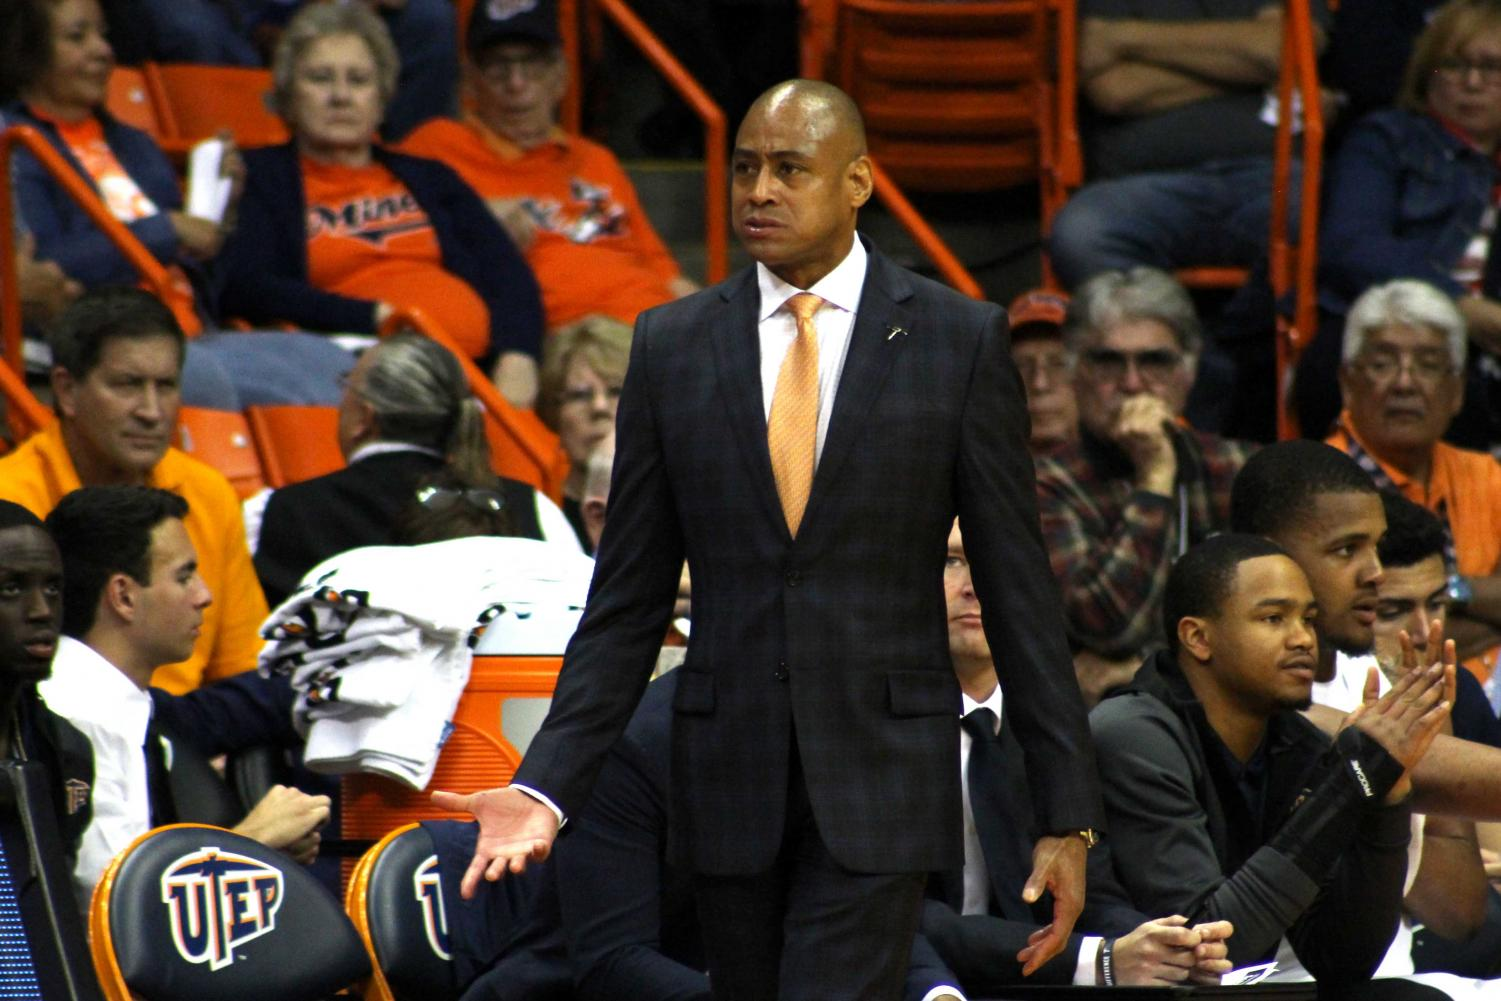 UTEP head coach Rodney Terry looks to lead his young Miner team into group play. The Miners are currently in 13th place in the Conference-USA standings.